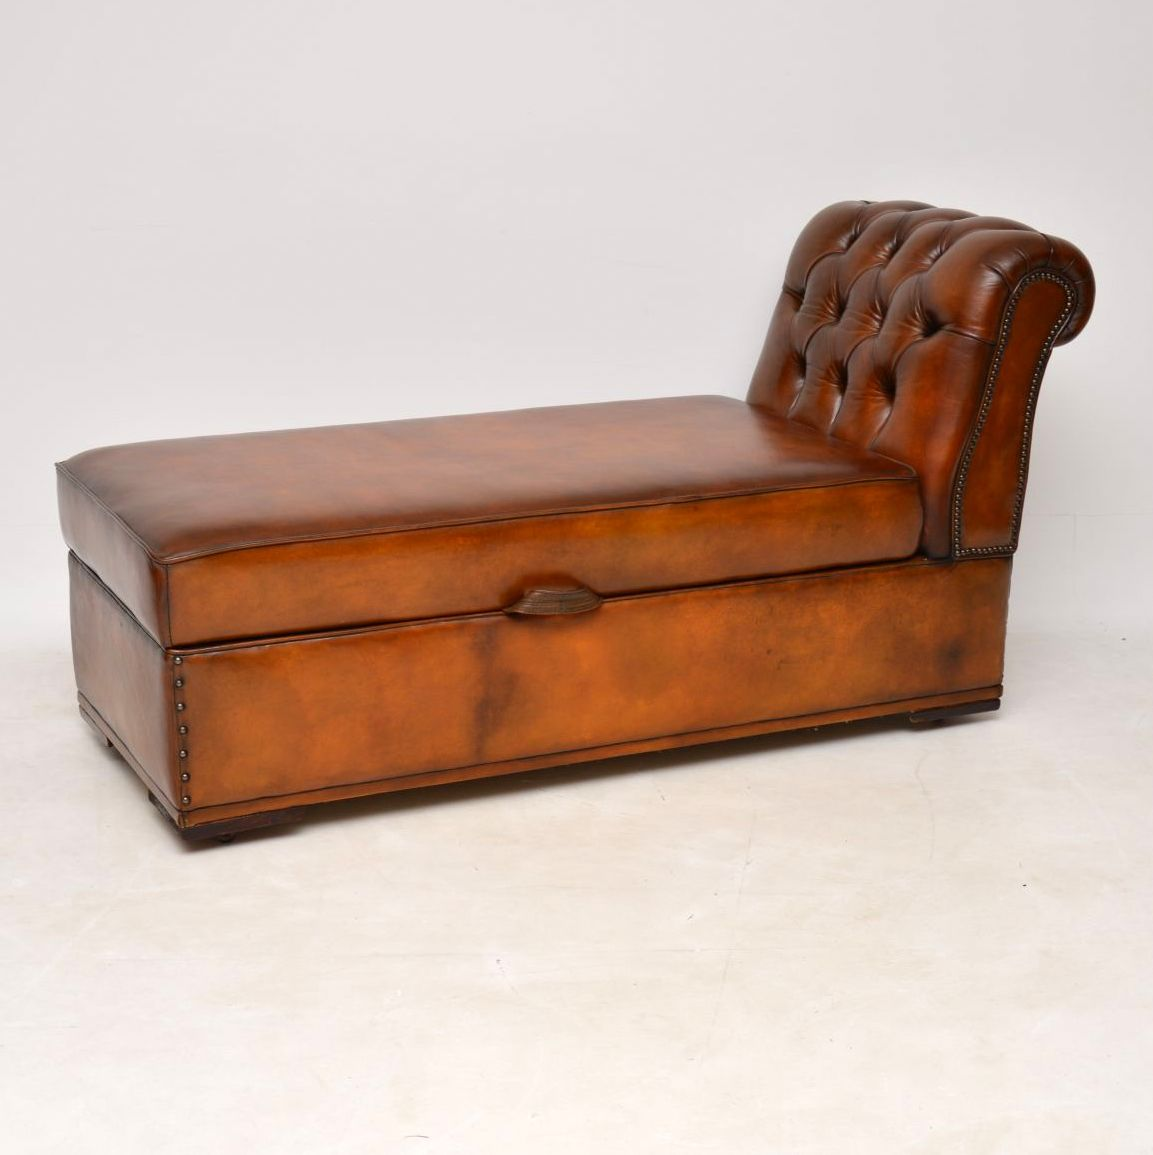 Antique Victorian Leather Chaise Lounge Ottoman